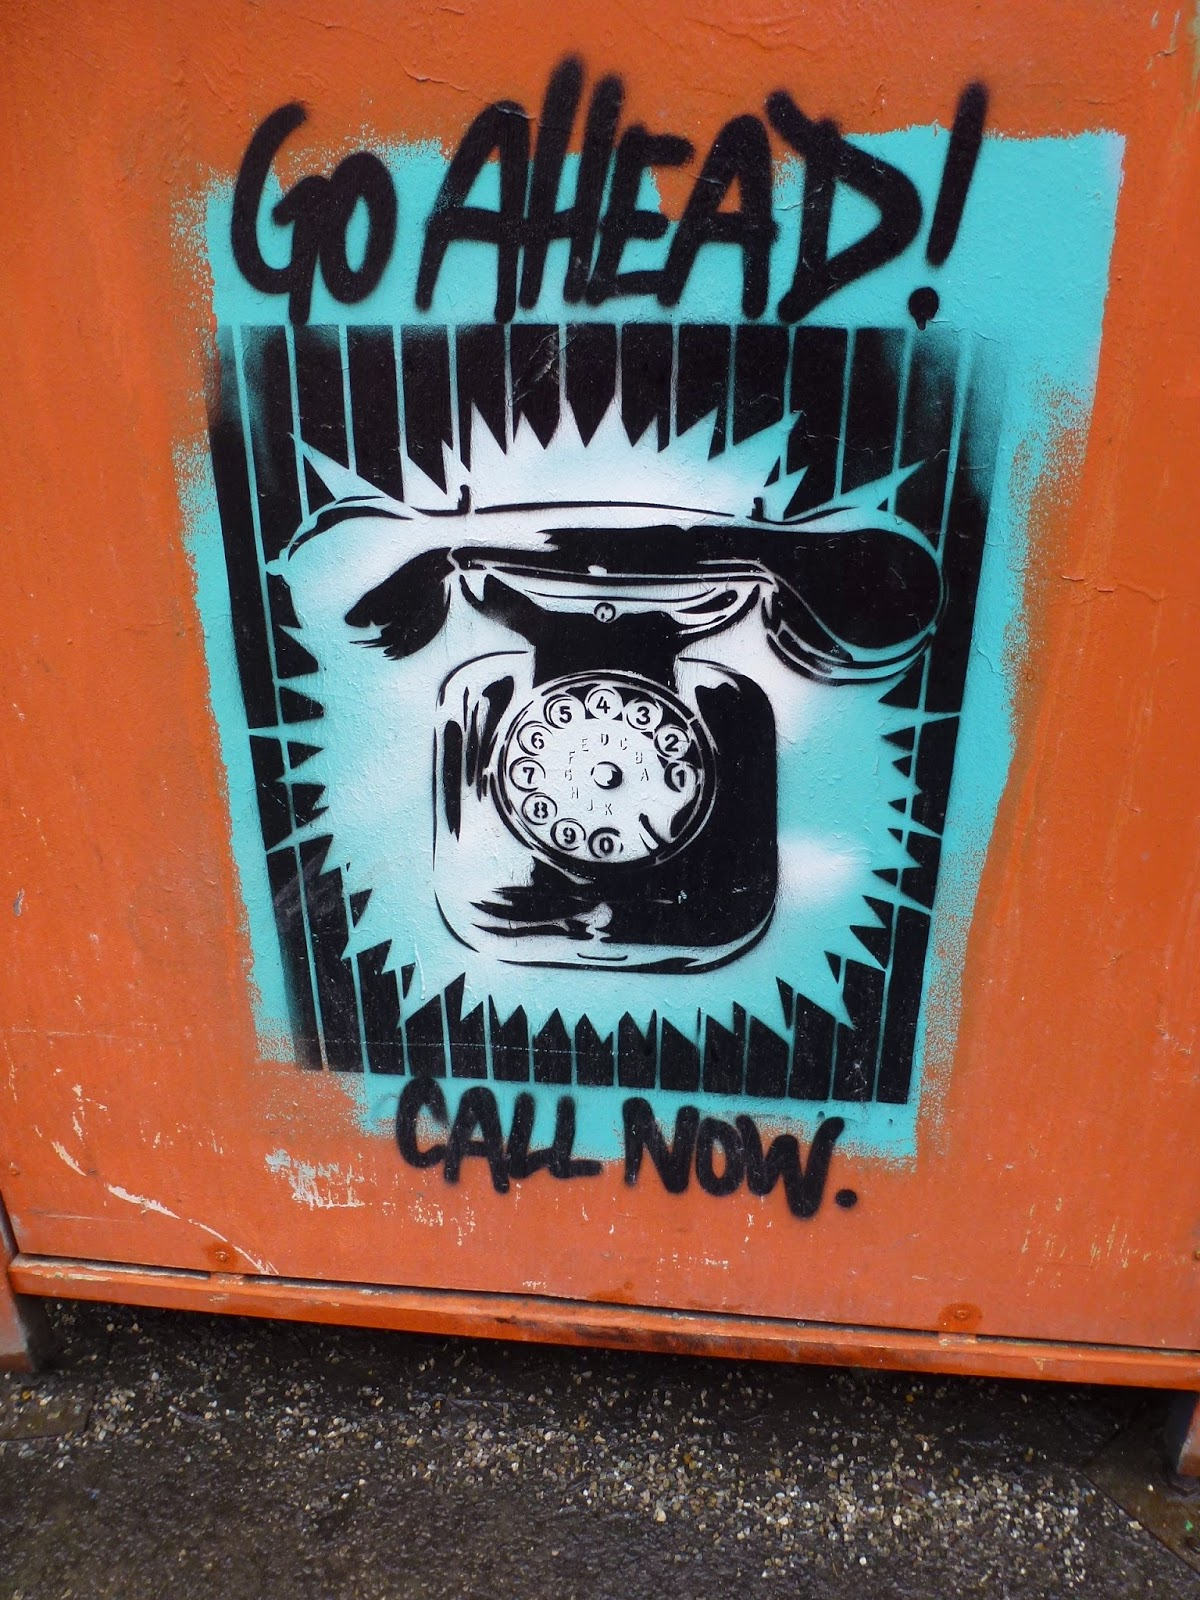 GO AHEAD! || CALL NOW. Kunstpark Ost, Stencils